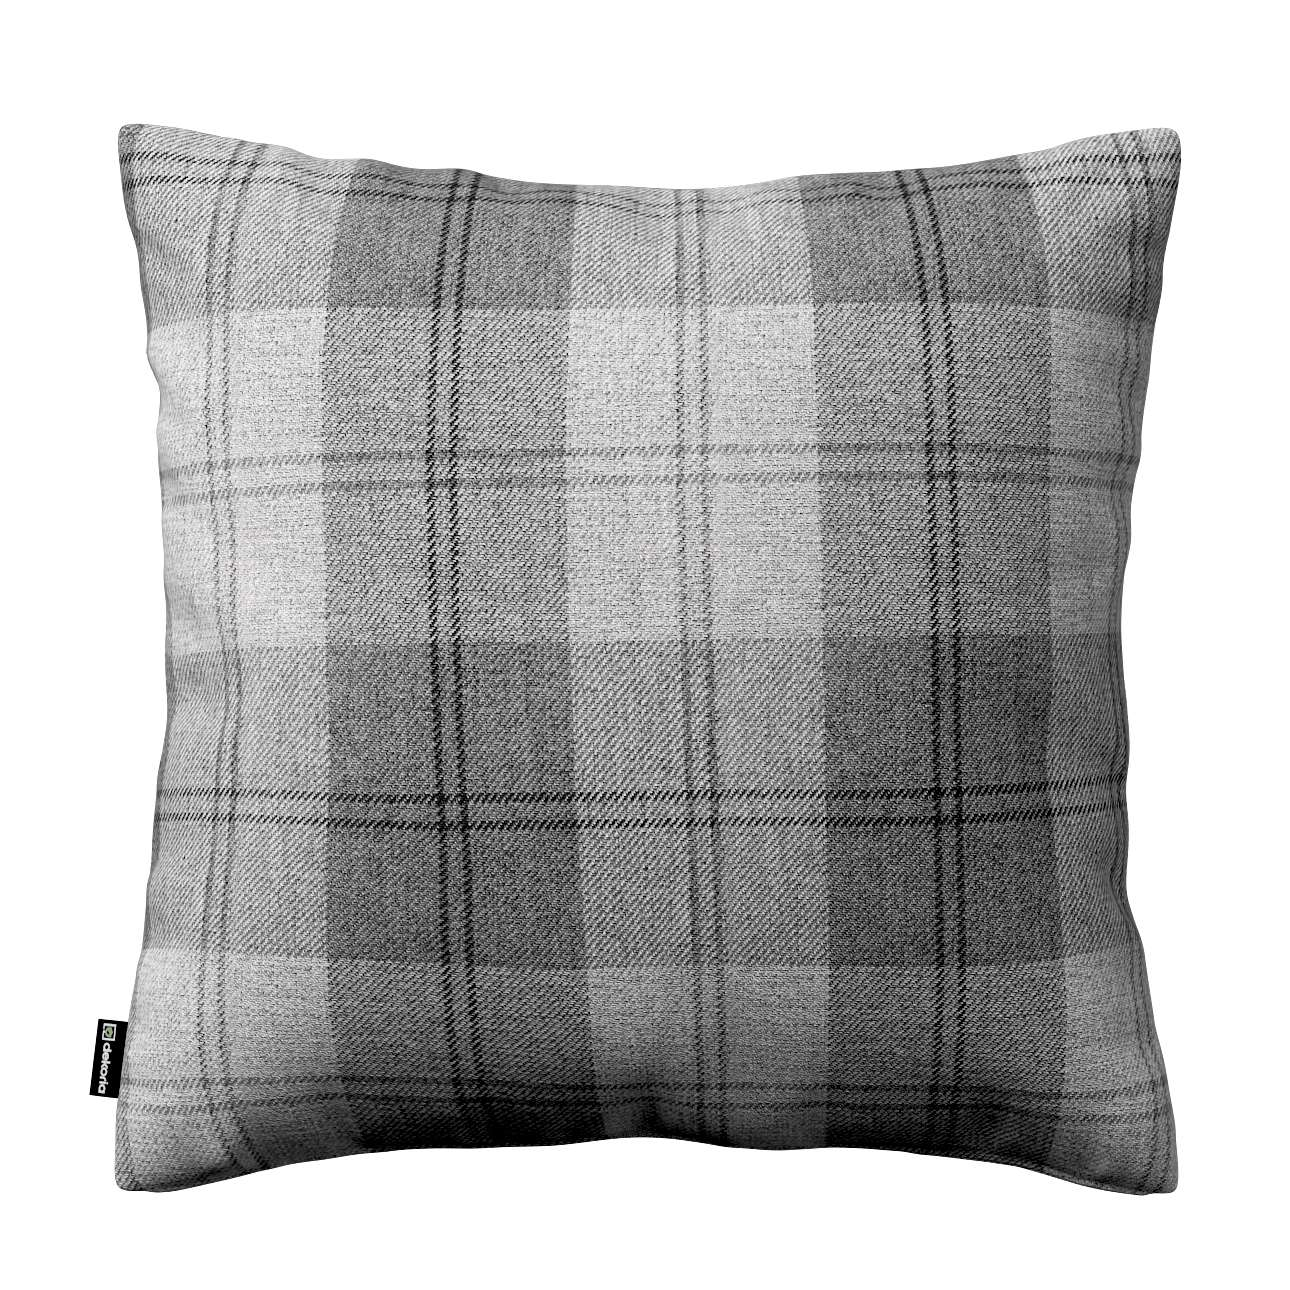 Kinga cushion cover 43 x 43 cm (17 x 17 inch) in collection Edinburgh, fabric: 115-75